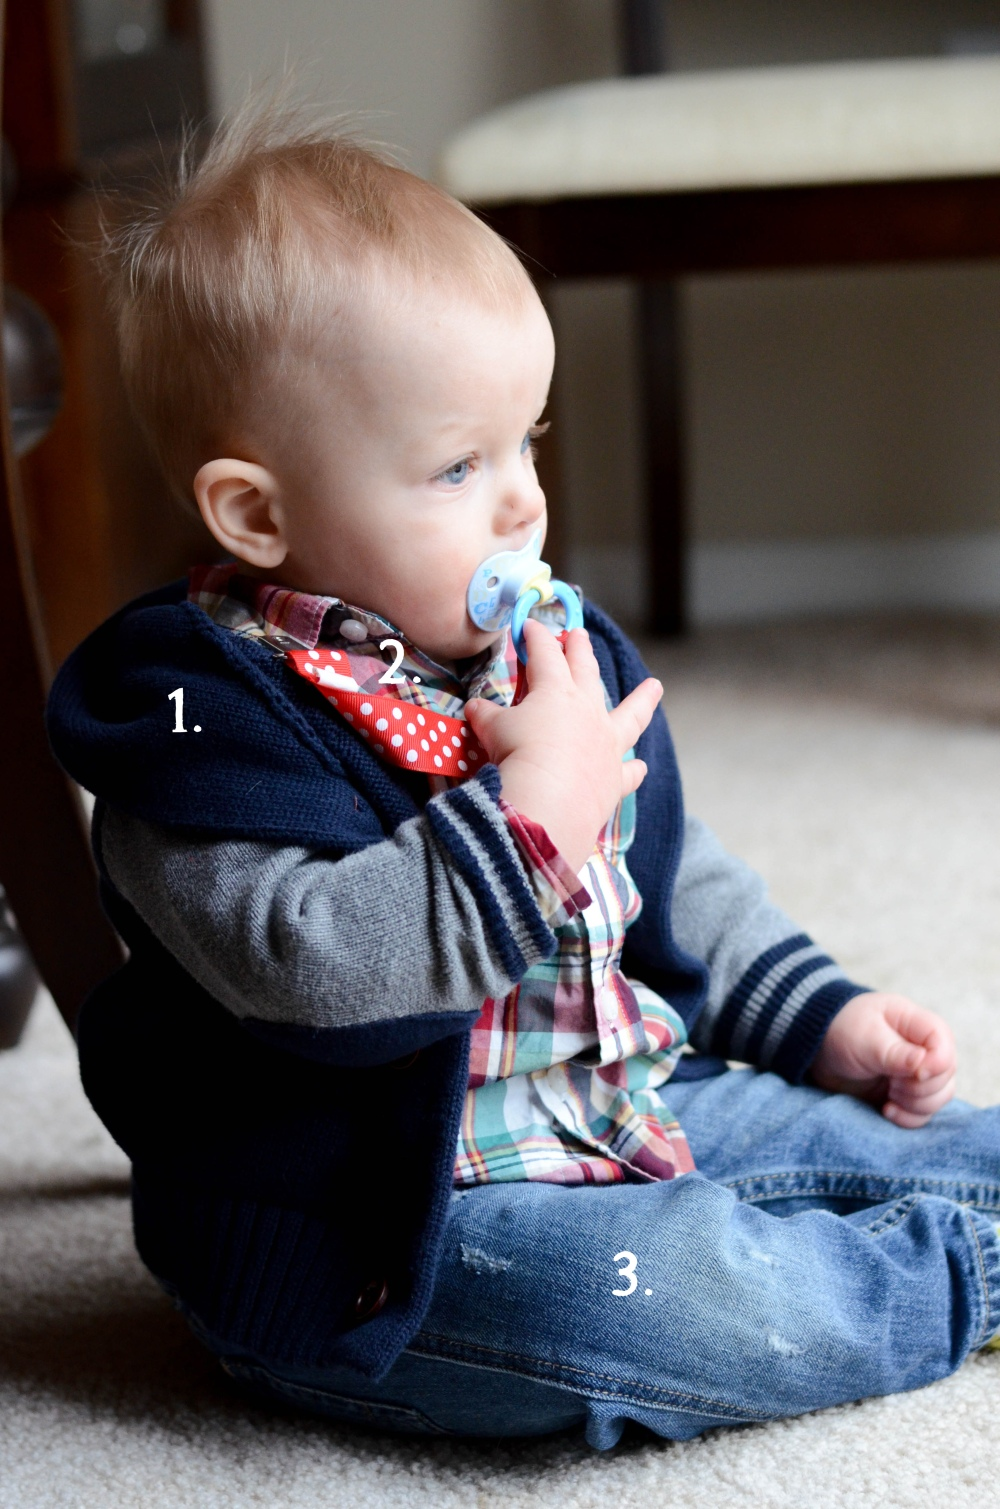 1. Gap Outlet: Navy and Gray patched cardigan 2. Janie and Jack: Multicolored Button Down 3. Gap: Distressed Baby Jeans